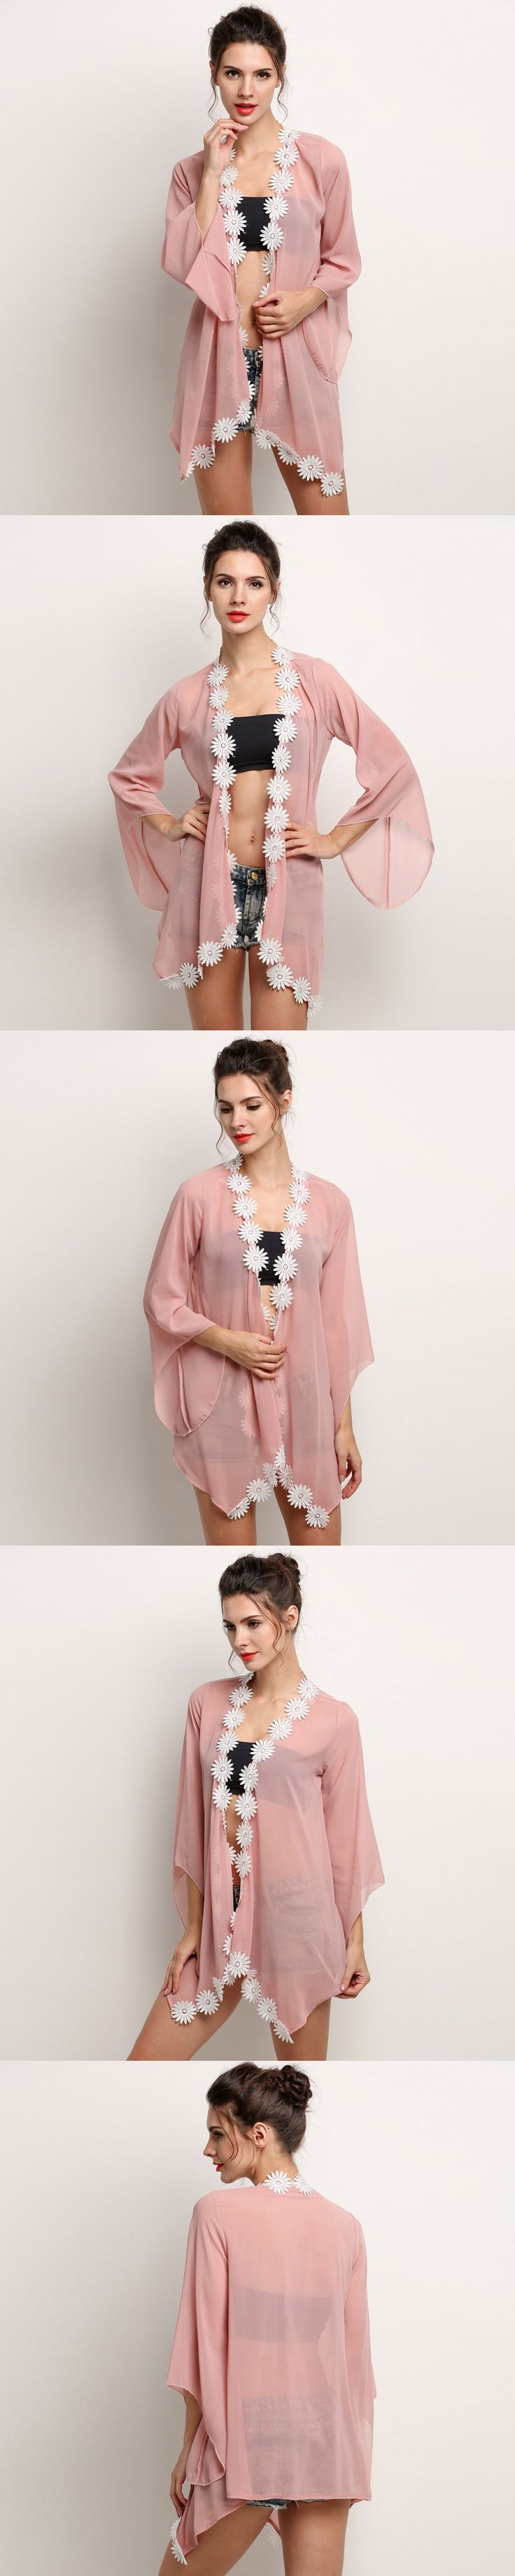 2016 Summer Shirt Style New Floral Chiffon Blouse Tops Women Lace Stitching Shirts Casual Blusas Sweet Kimono Cardigan Plus Size